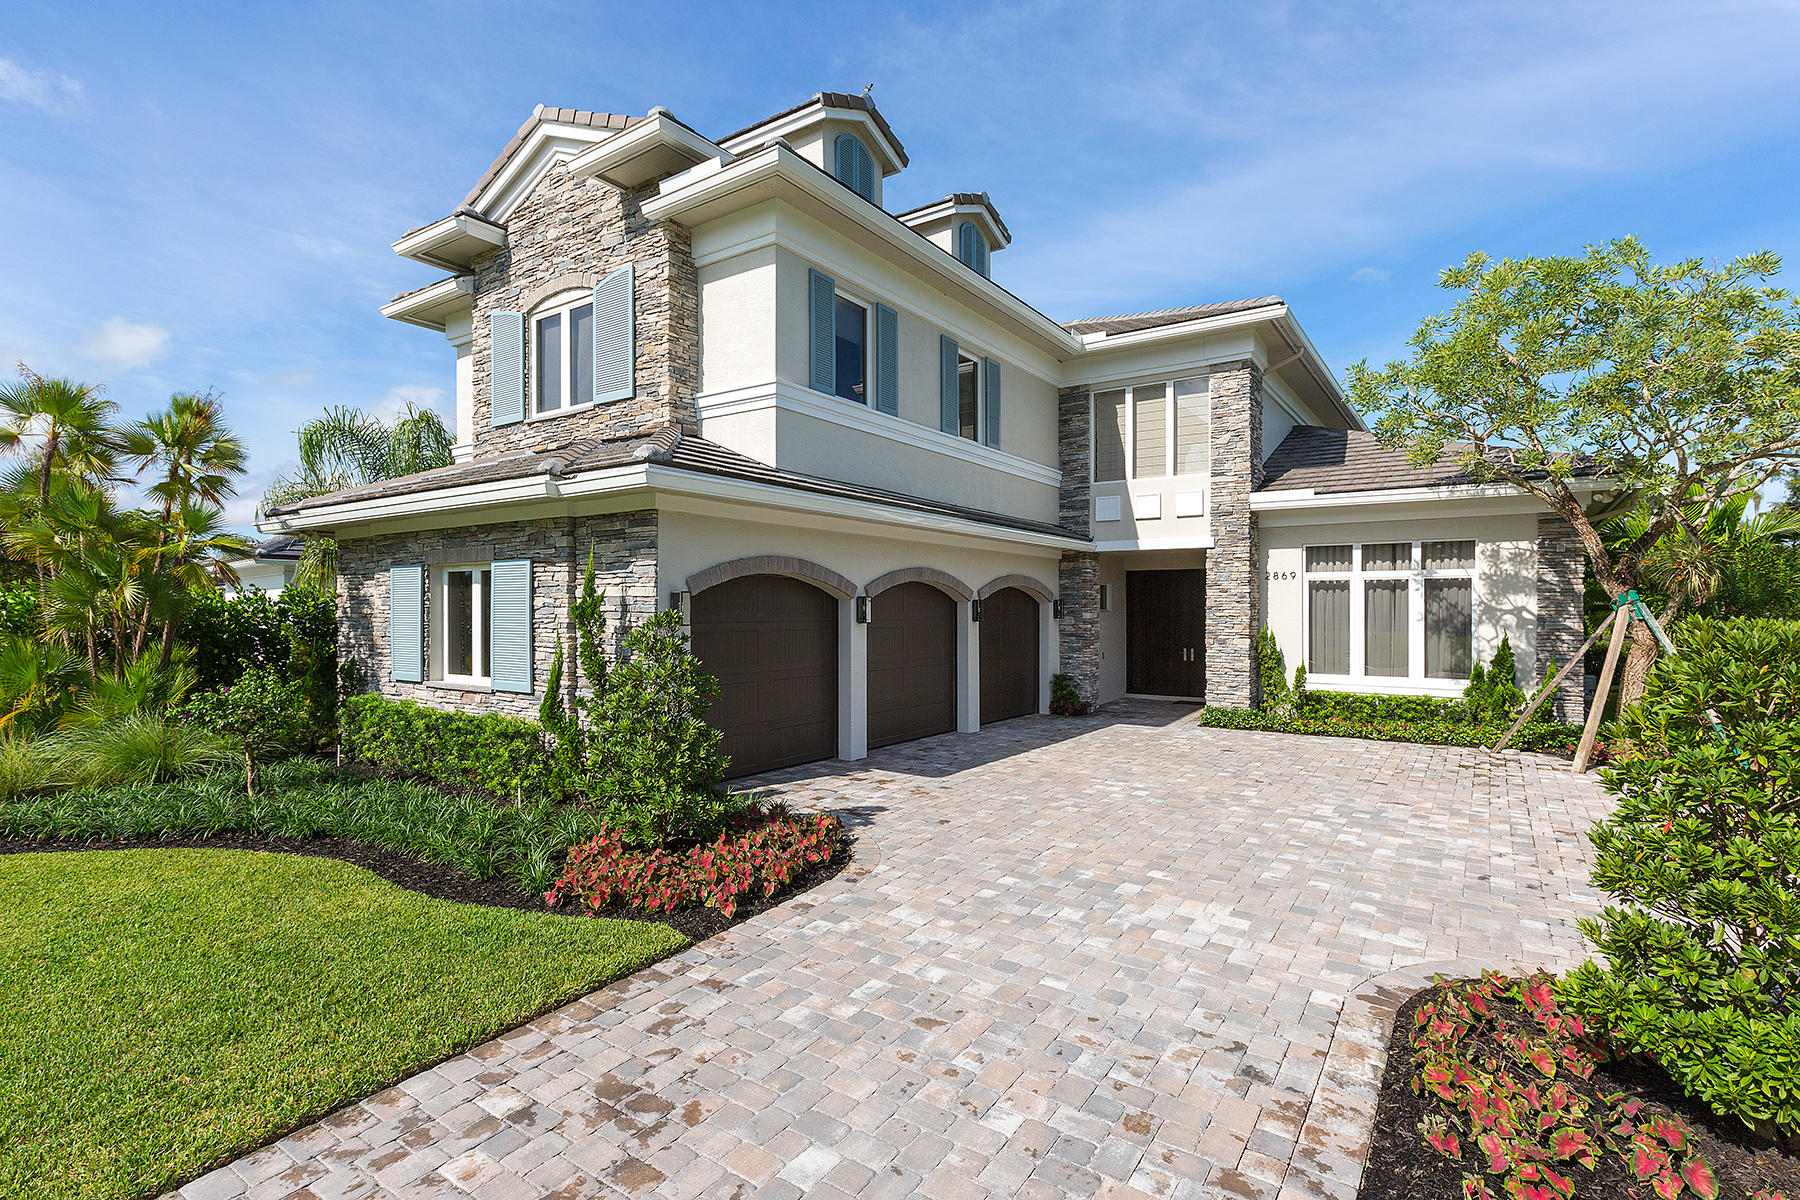 2869 Blue Cypress Lane, Wellington, Florida 33414, 4 Bedrooms Bedrooms, ,5.1 BathroomsBathrooms,Single Family,For Sale,Palm Beach Polo Club,Blue Cypress,RX-10305077